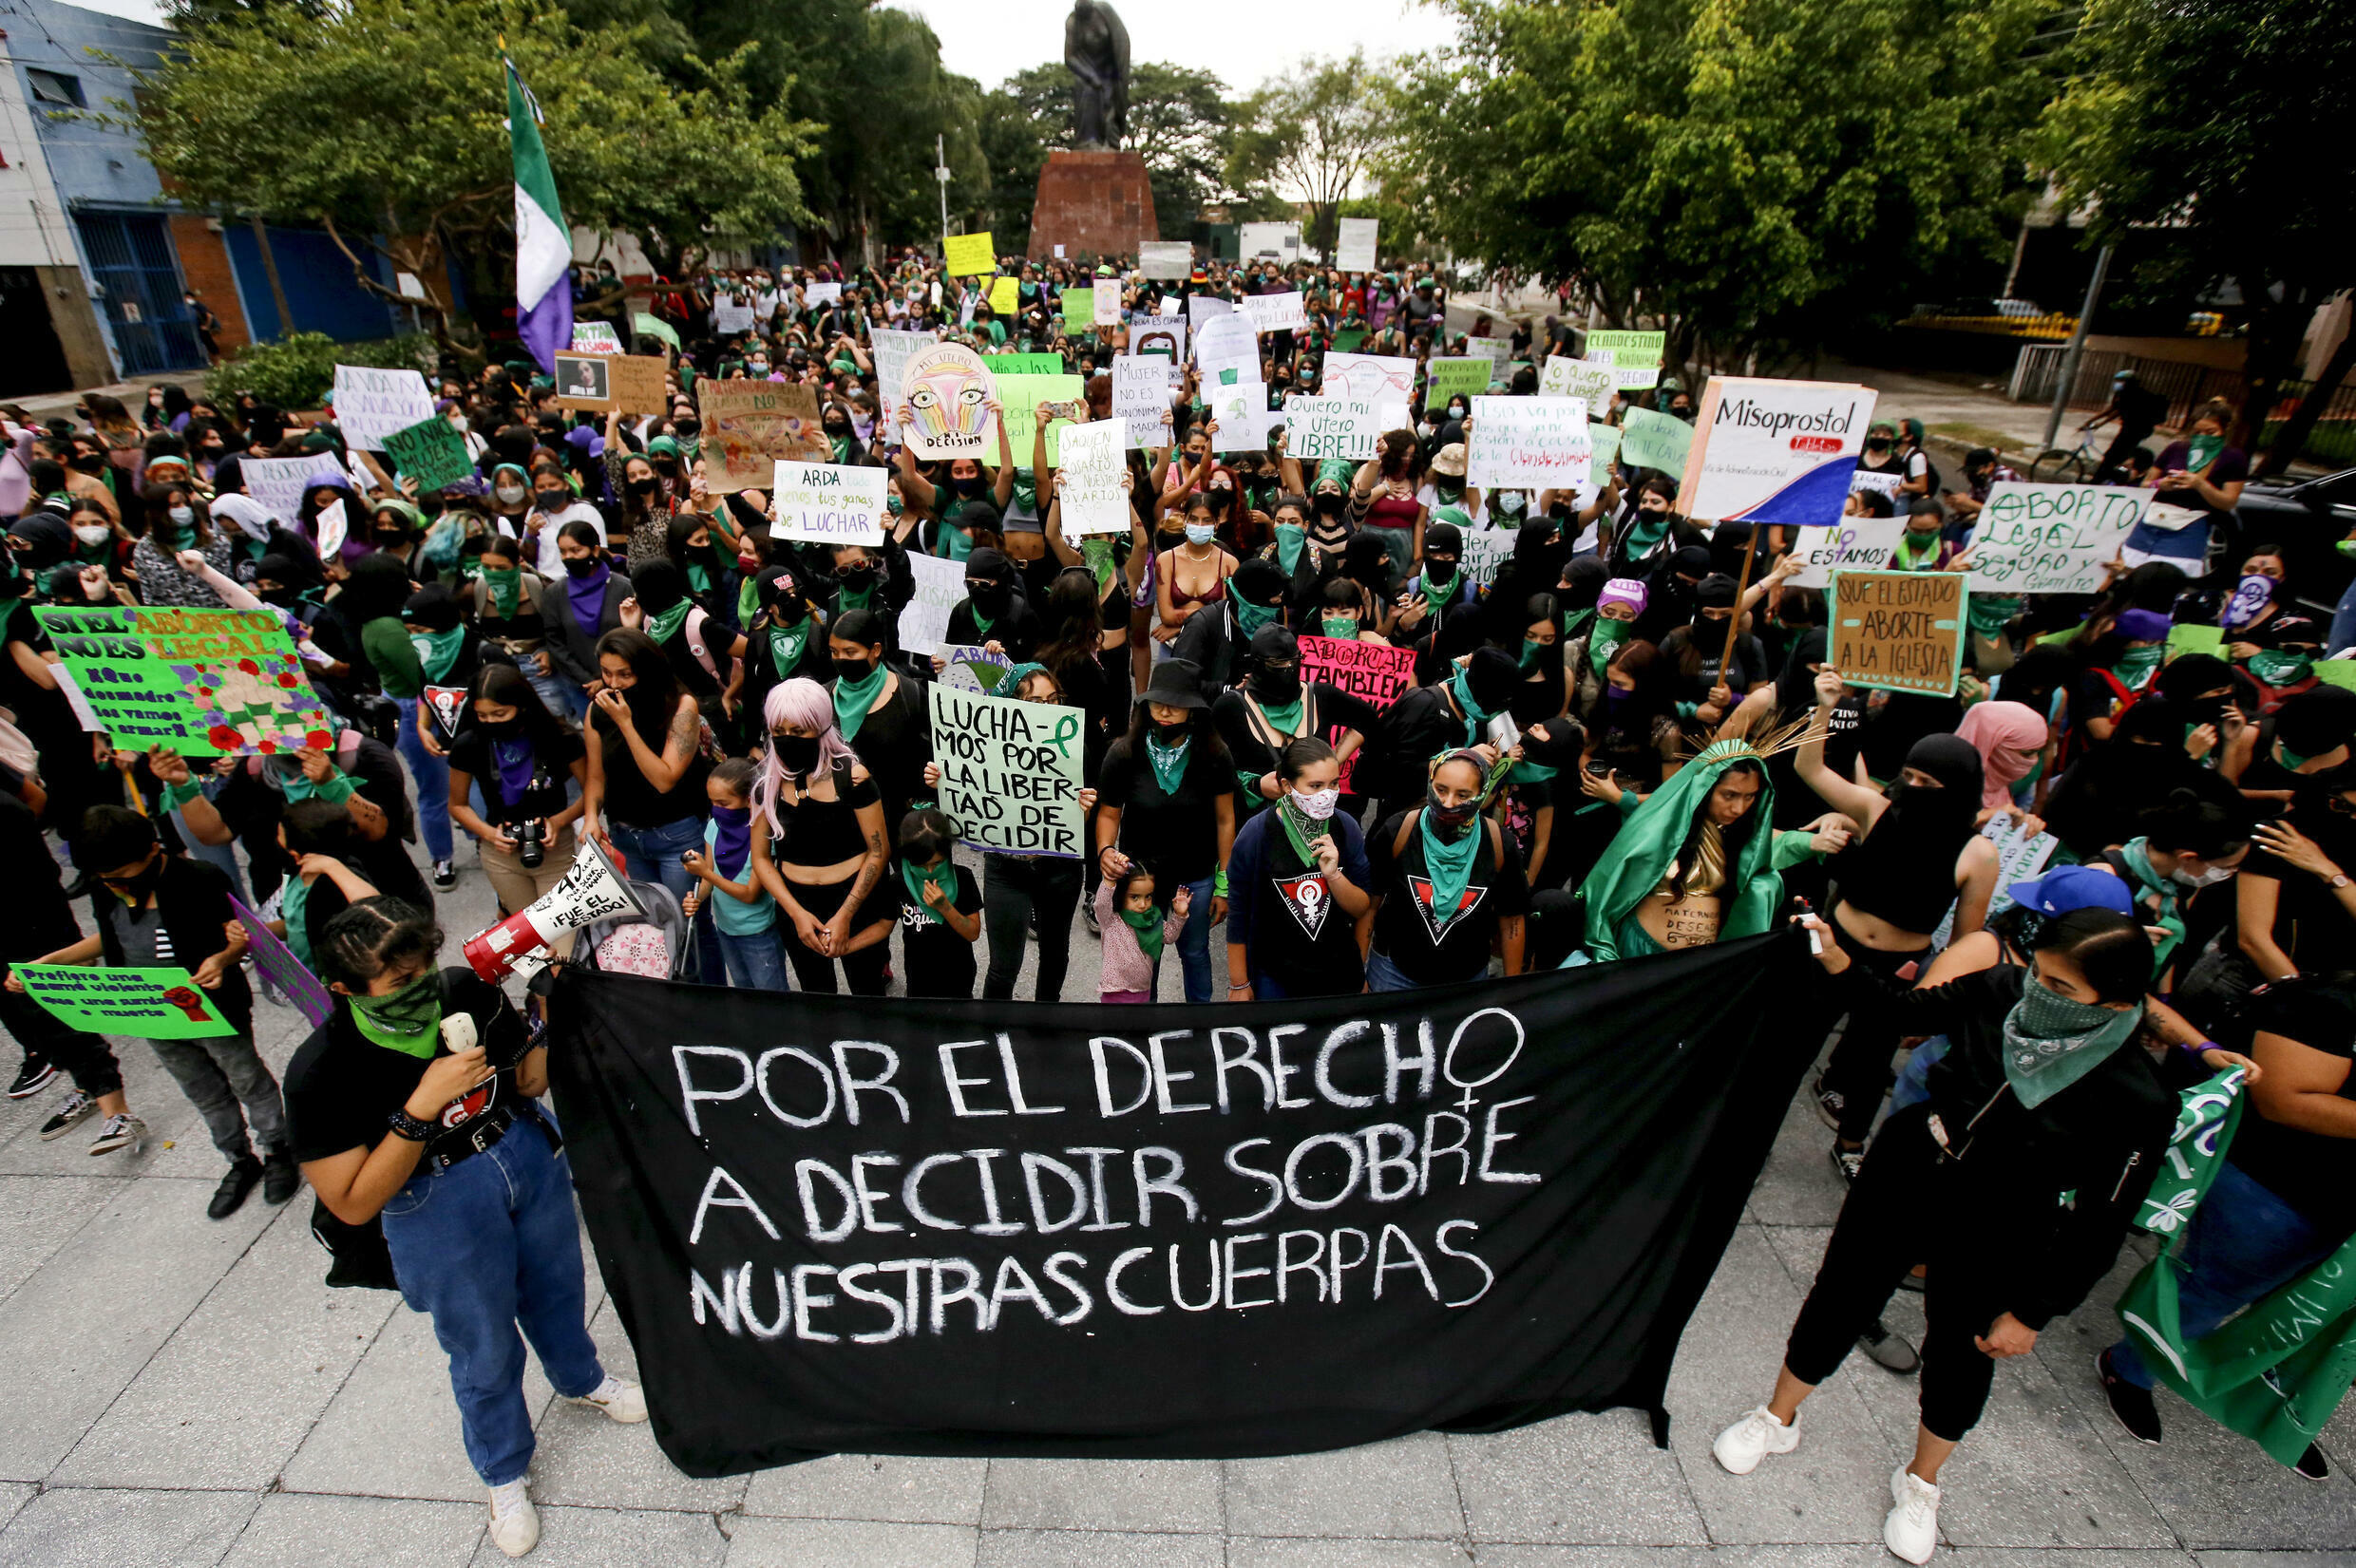 Supporters of the legalization of abortion take part in a demonstration in the framework of the International Safe Abortion Day, in Guadalajara, Mexico on September 28, 2020